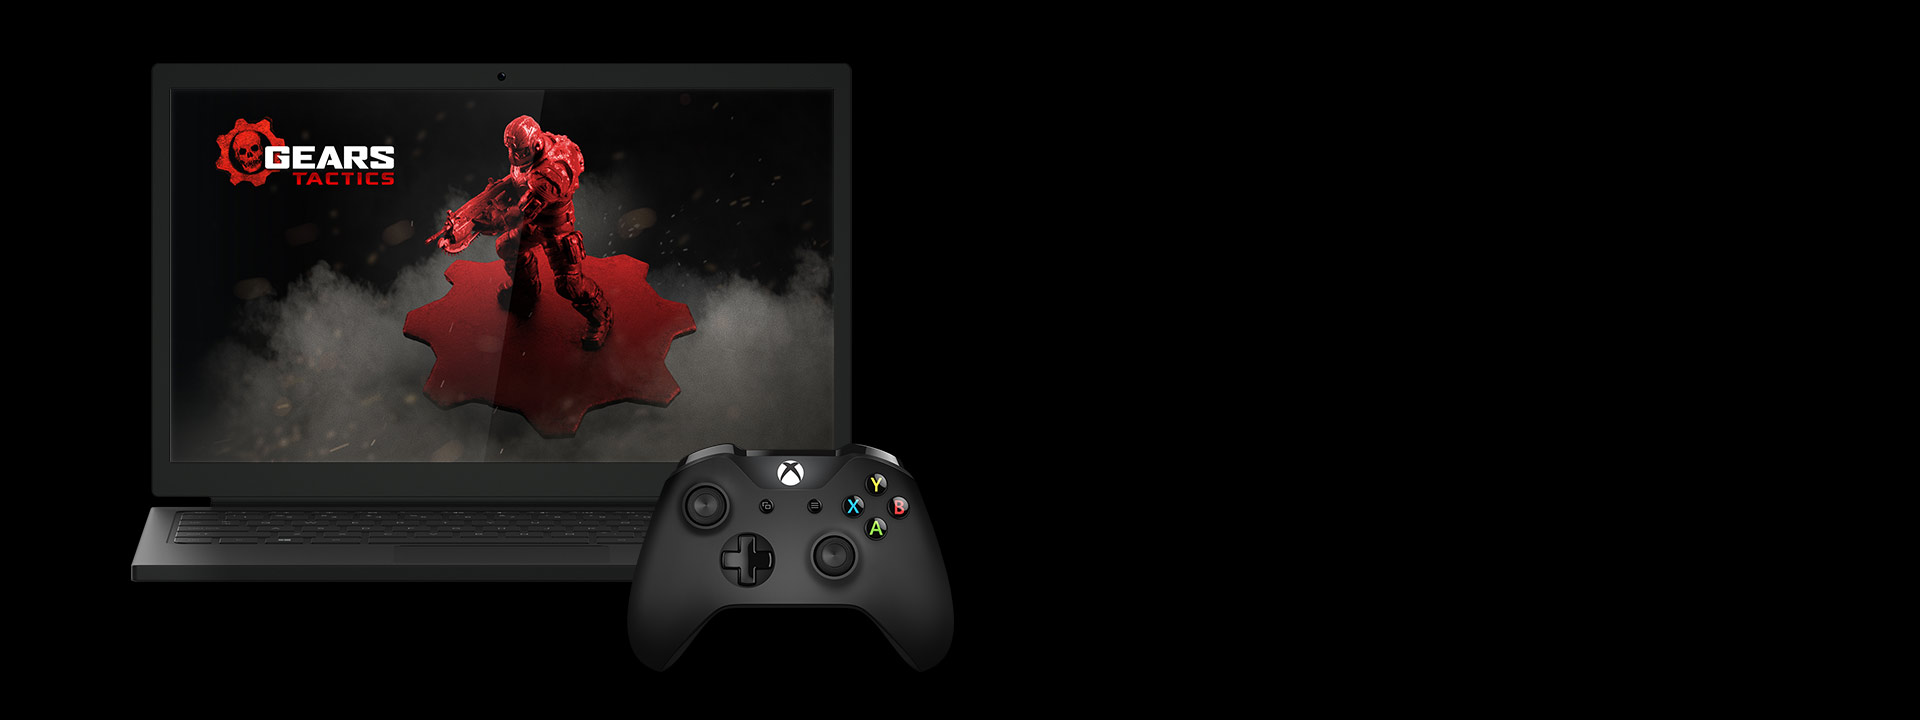 red gears of war miniature on a laptop screen next to an xbox one controller